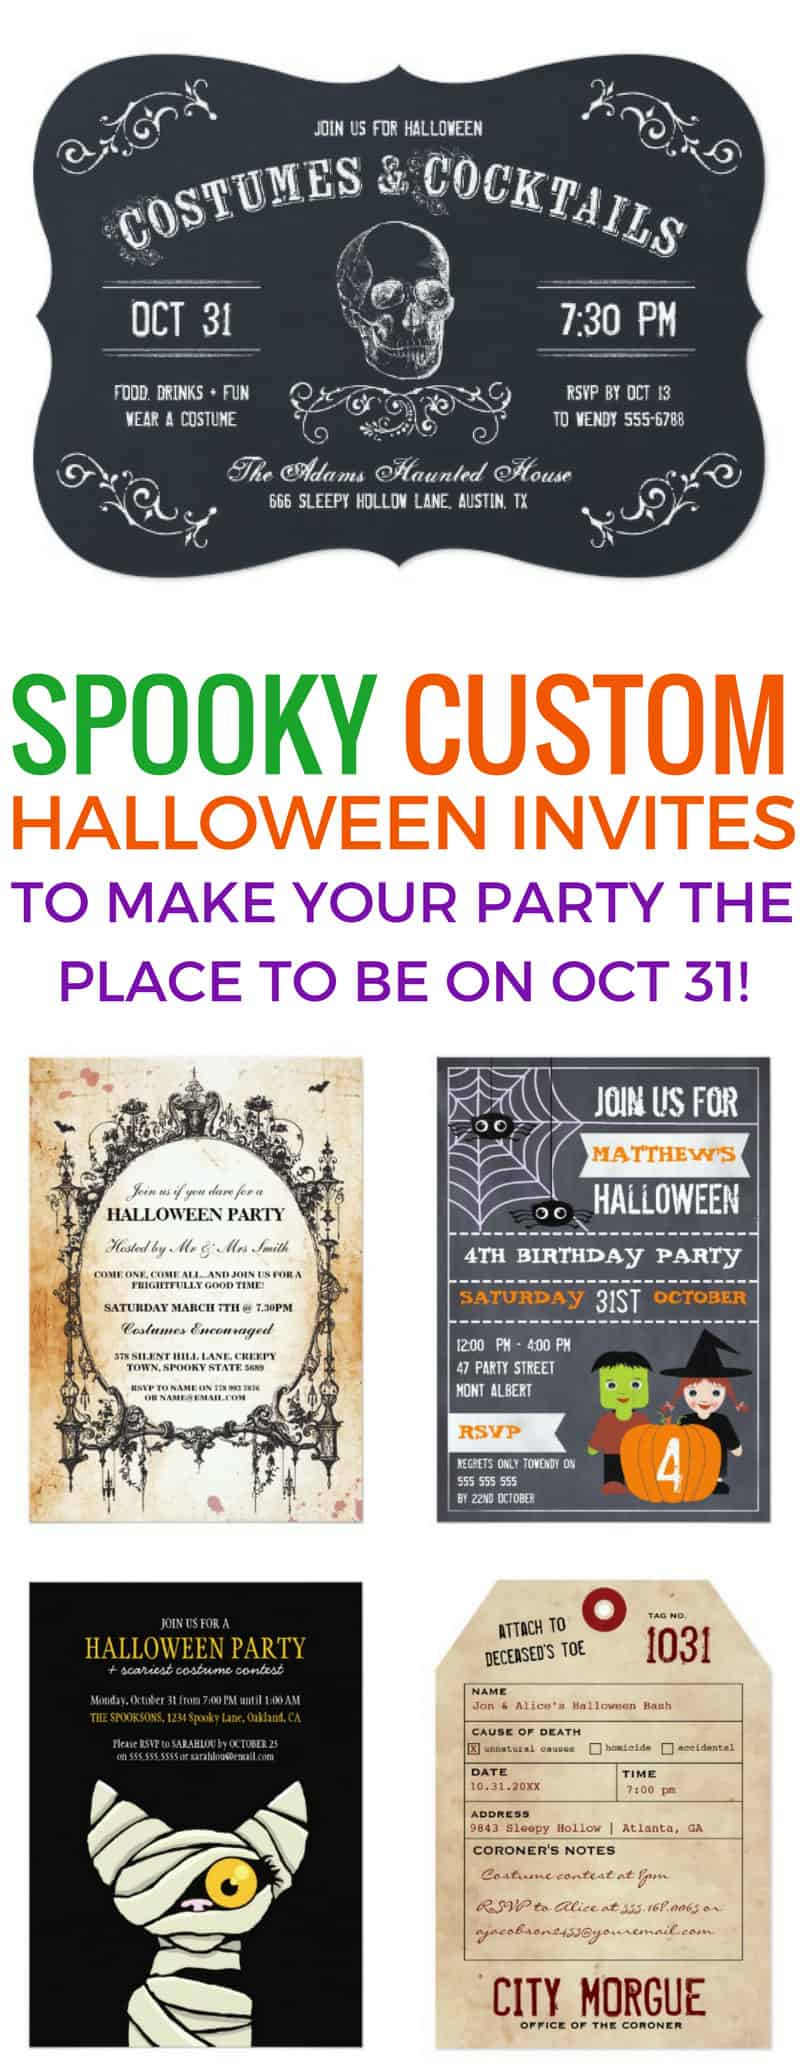 These custom Halloween invitations are just what I was looking for! Thanks for sharing!